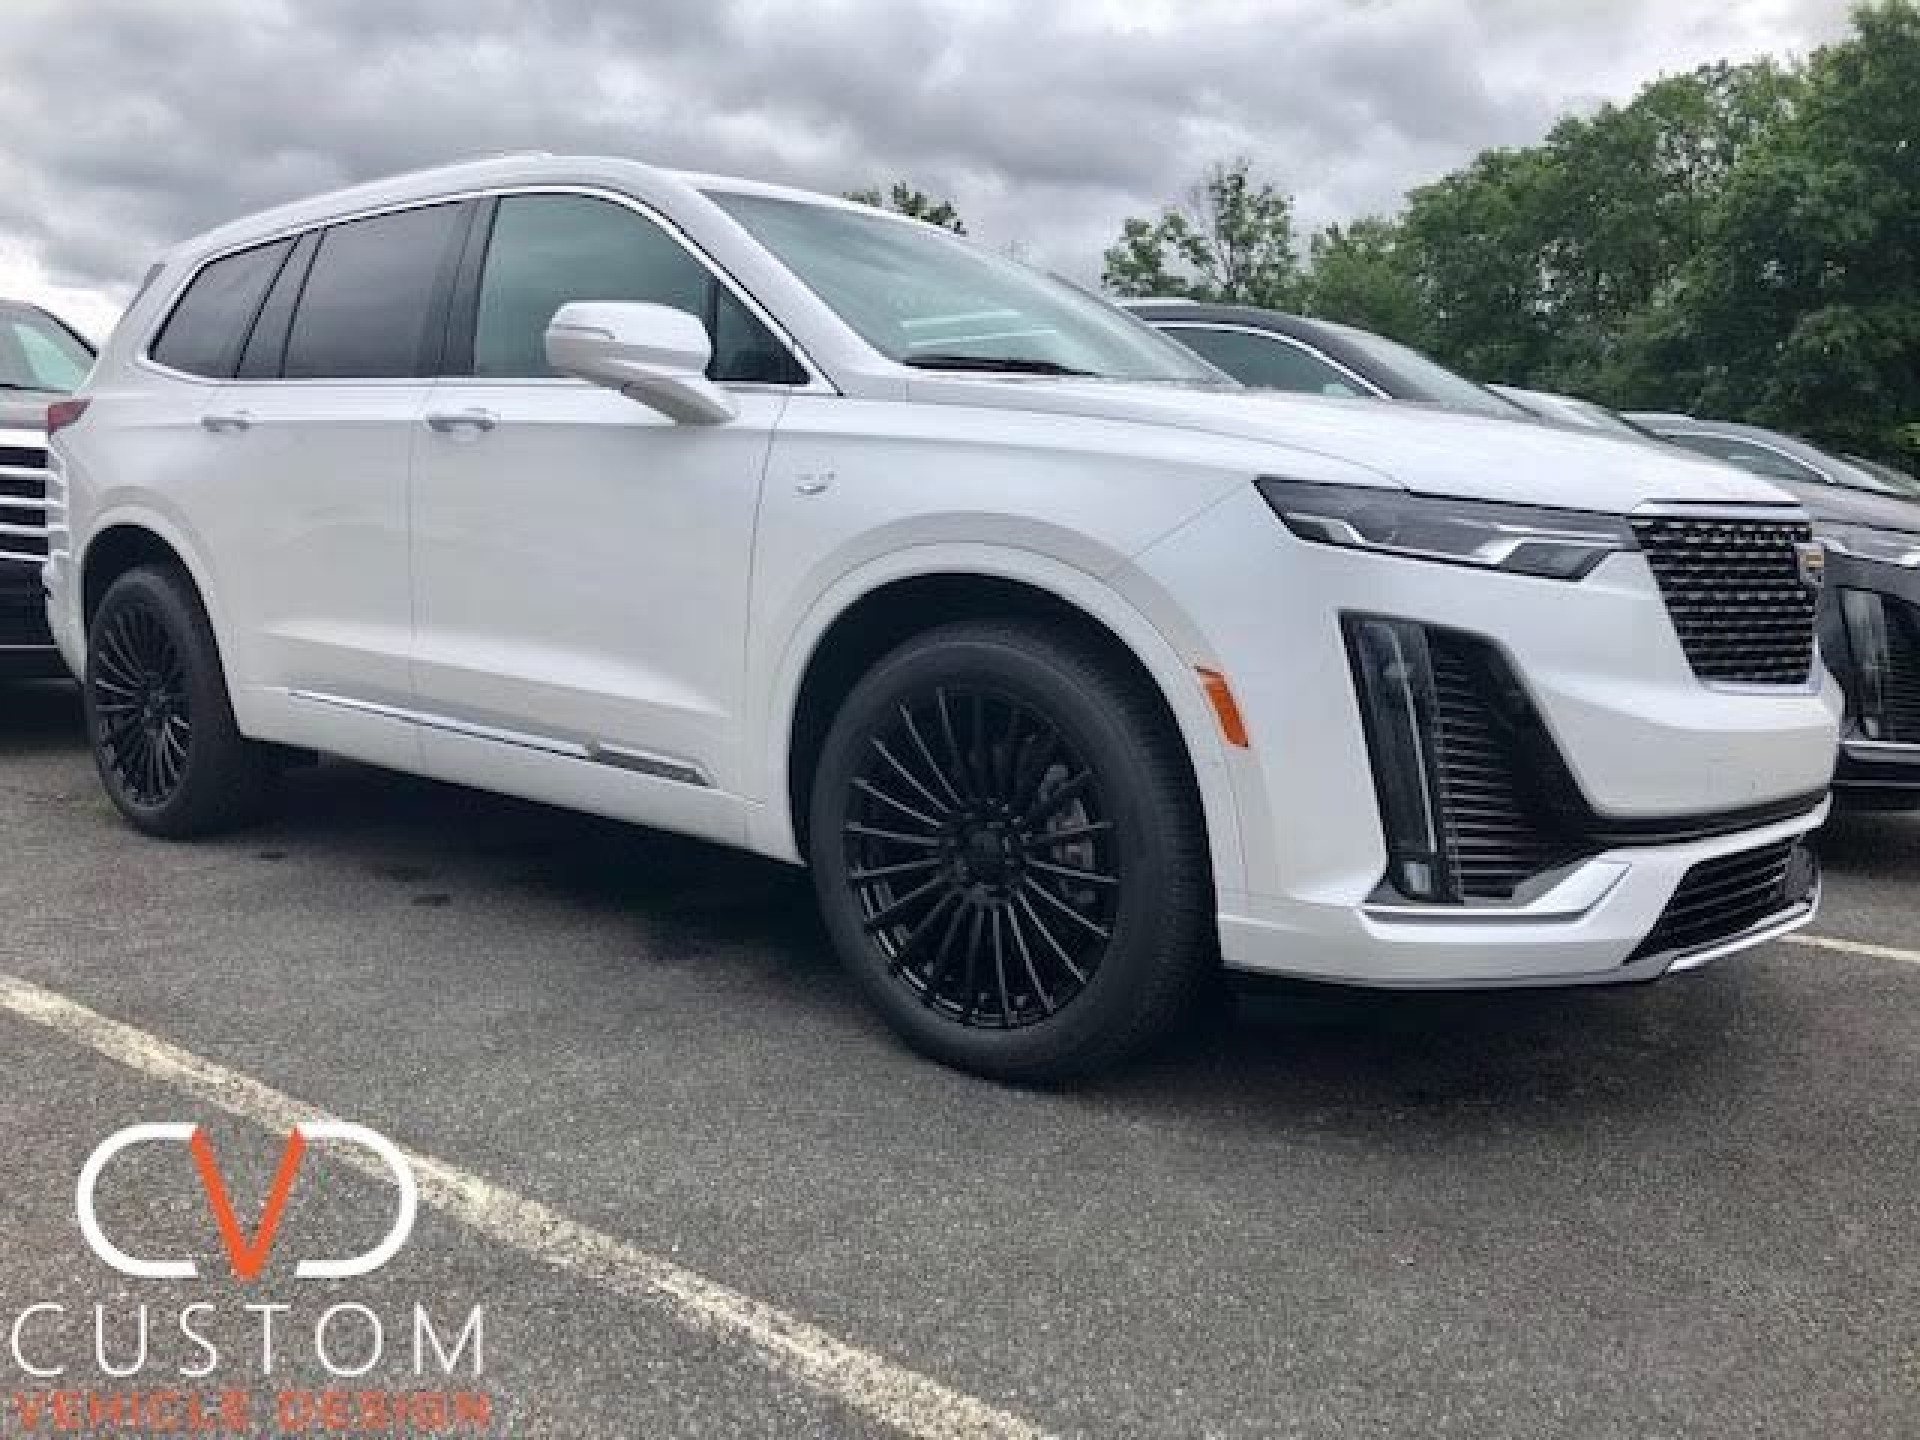 2020 Cadillac XT6 with Vogue VT387 wheels